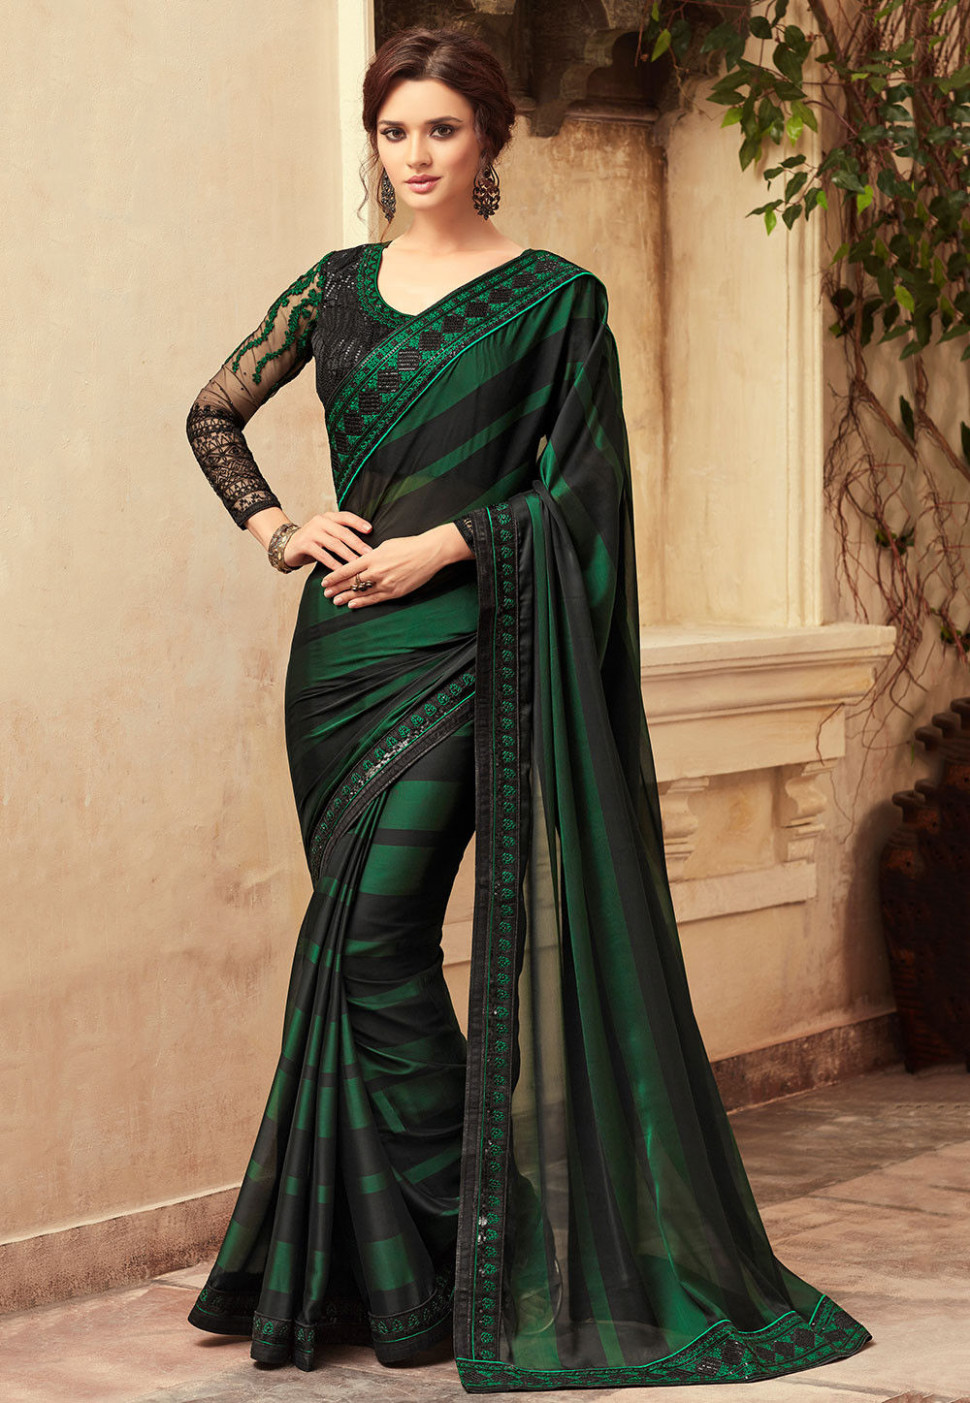 Embroidered Satin Chiffon Saree in Green and Black : SFVA634